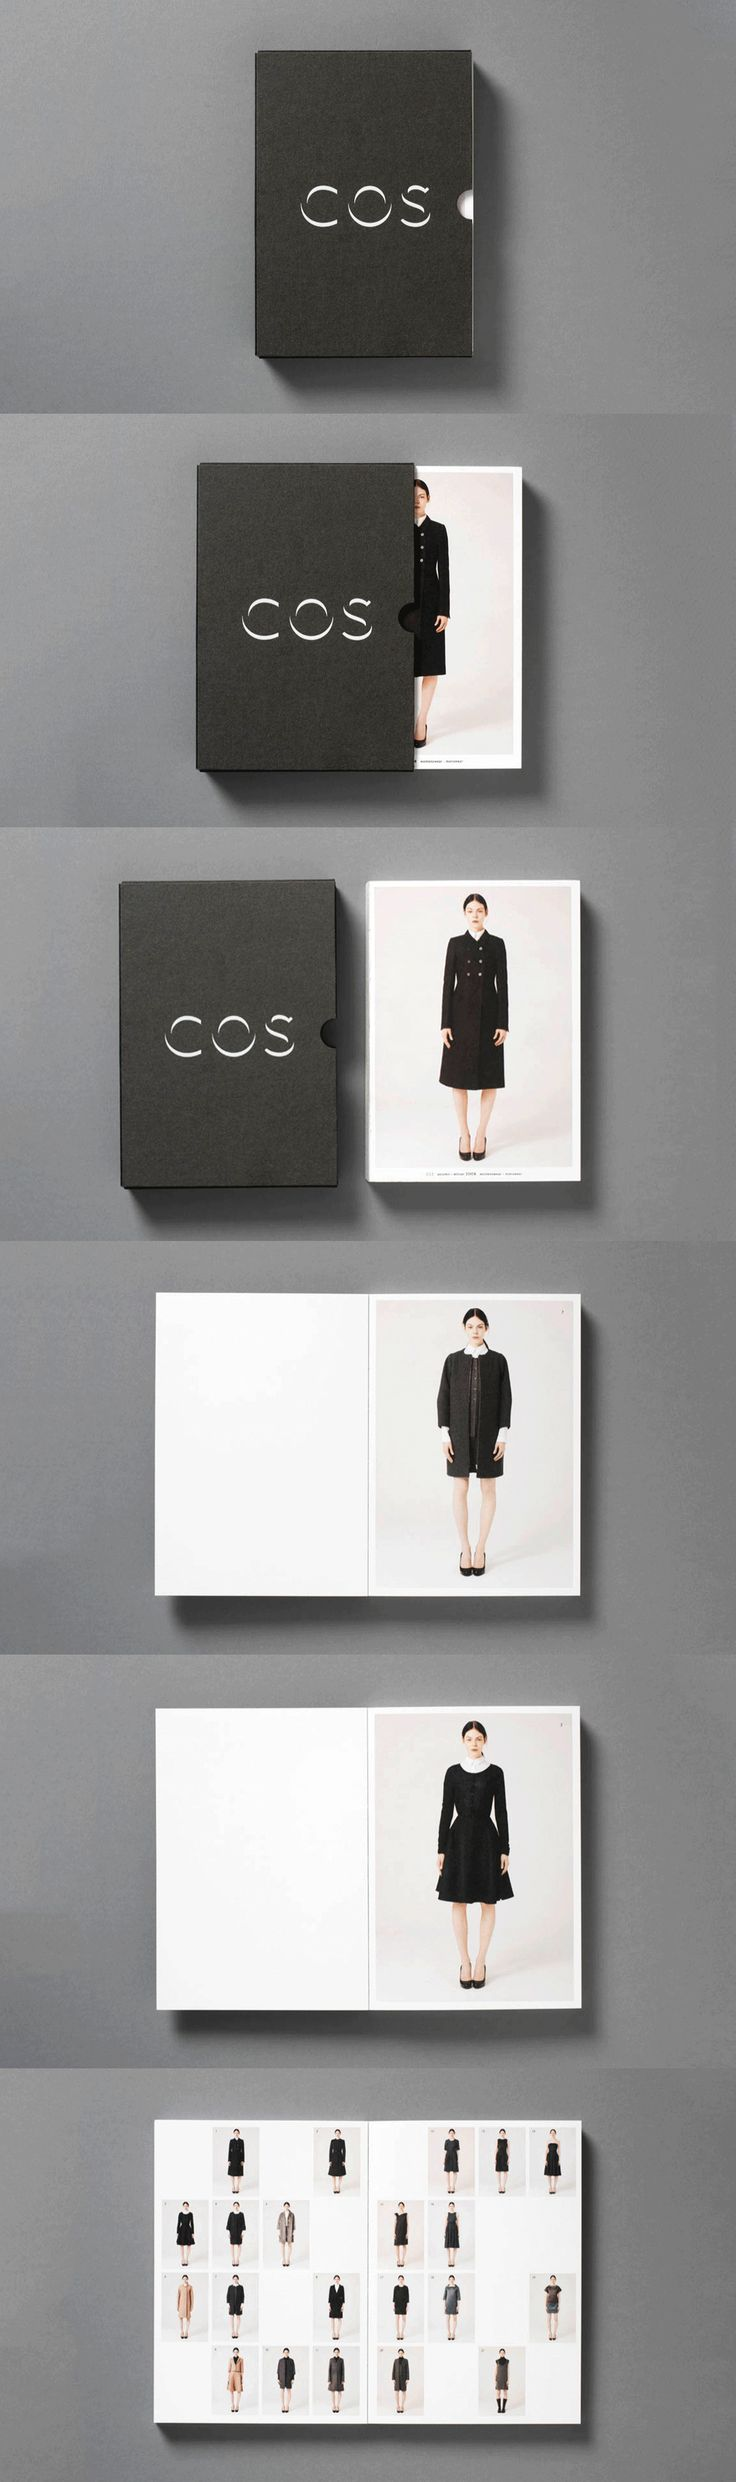 COS lookbook by Wednesday London